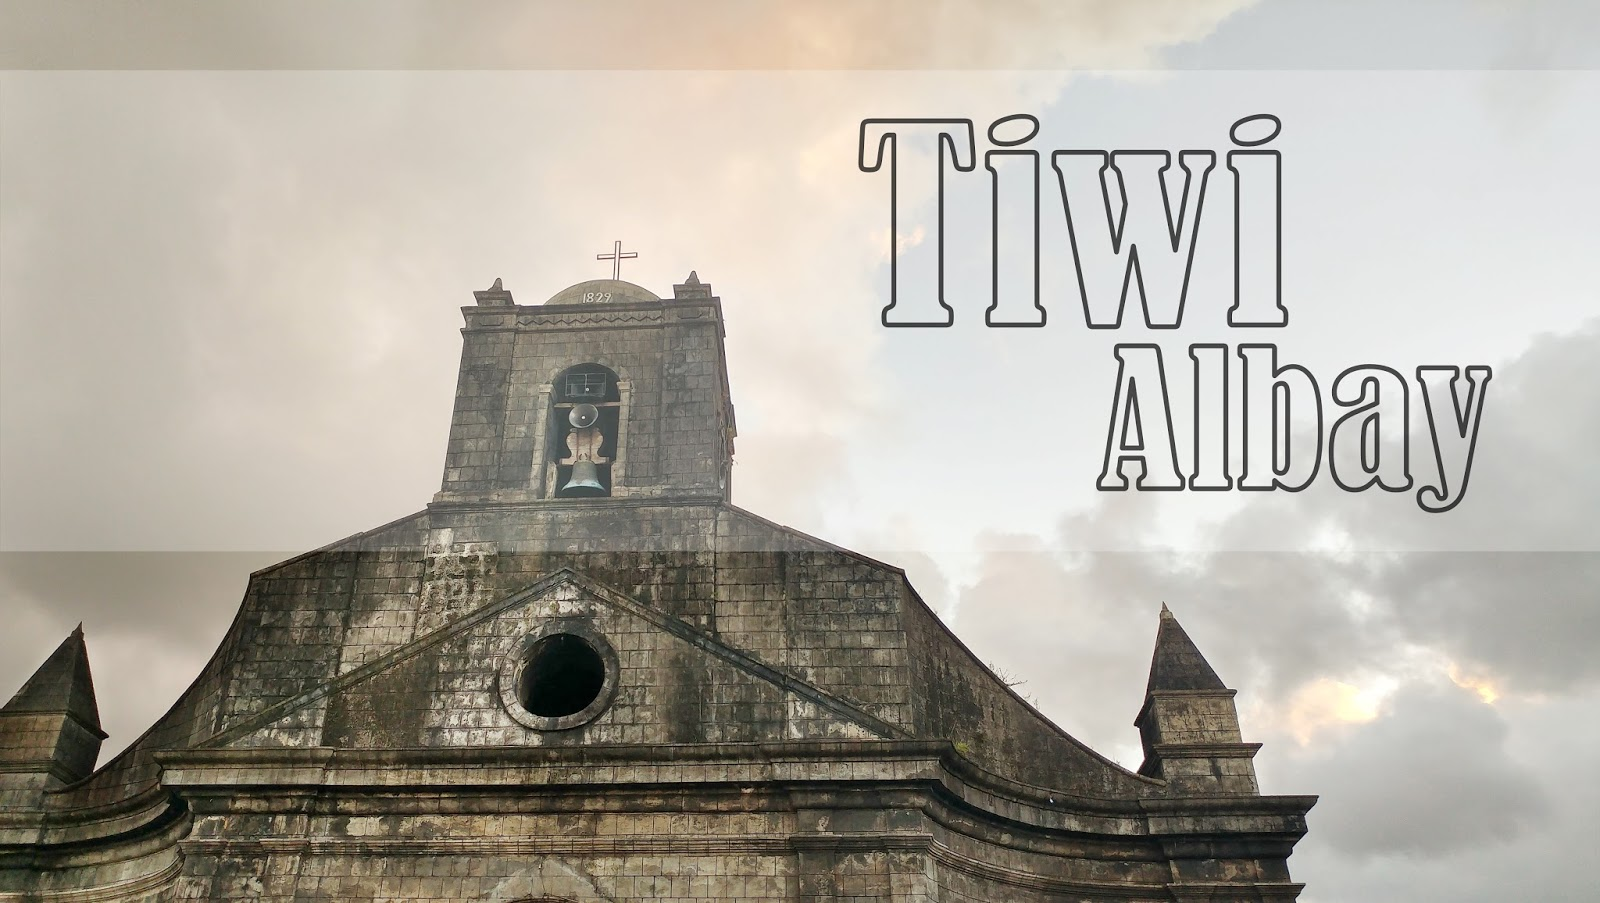 spontaneity: must-see attractions in tiwi albay (plus side trip in